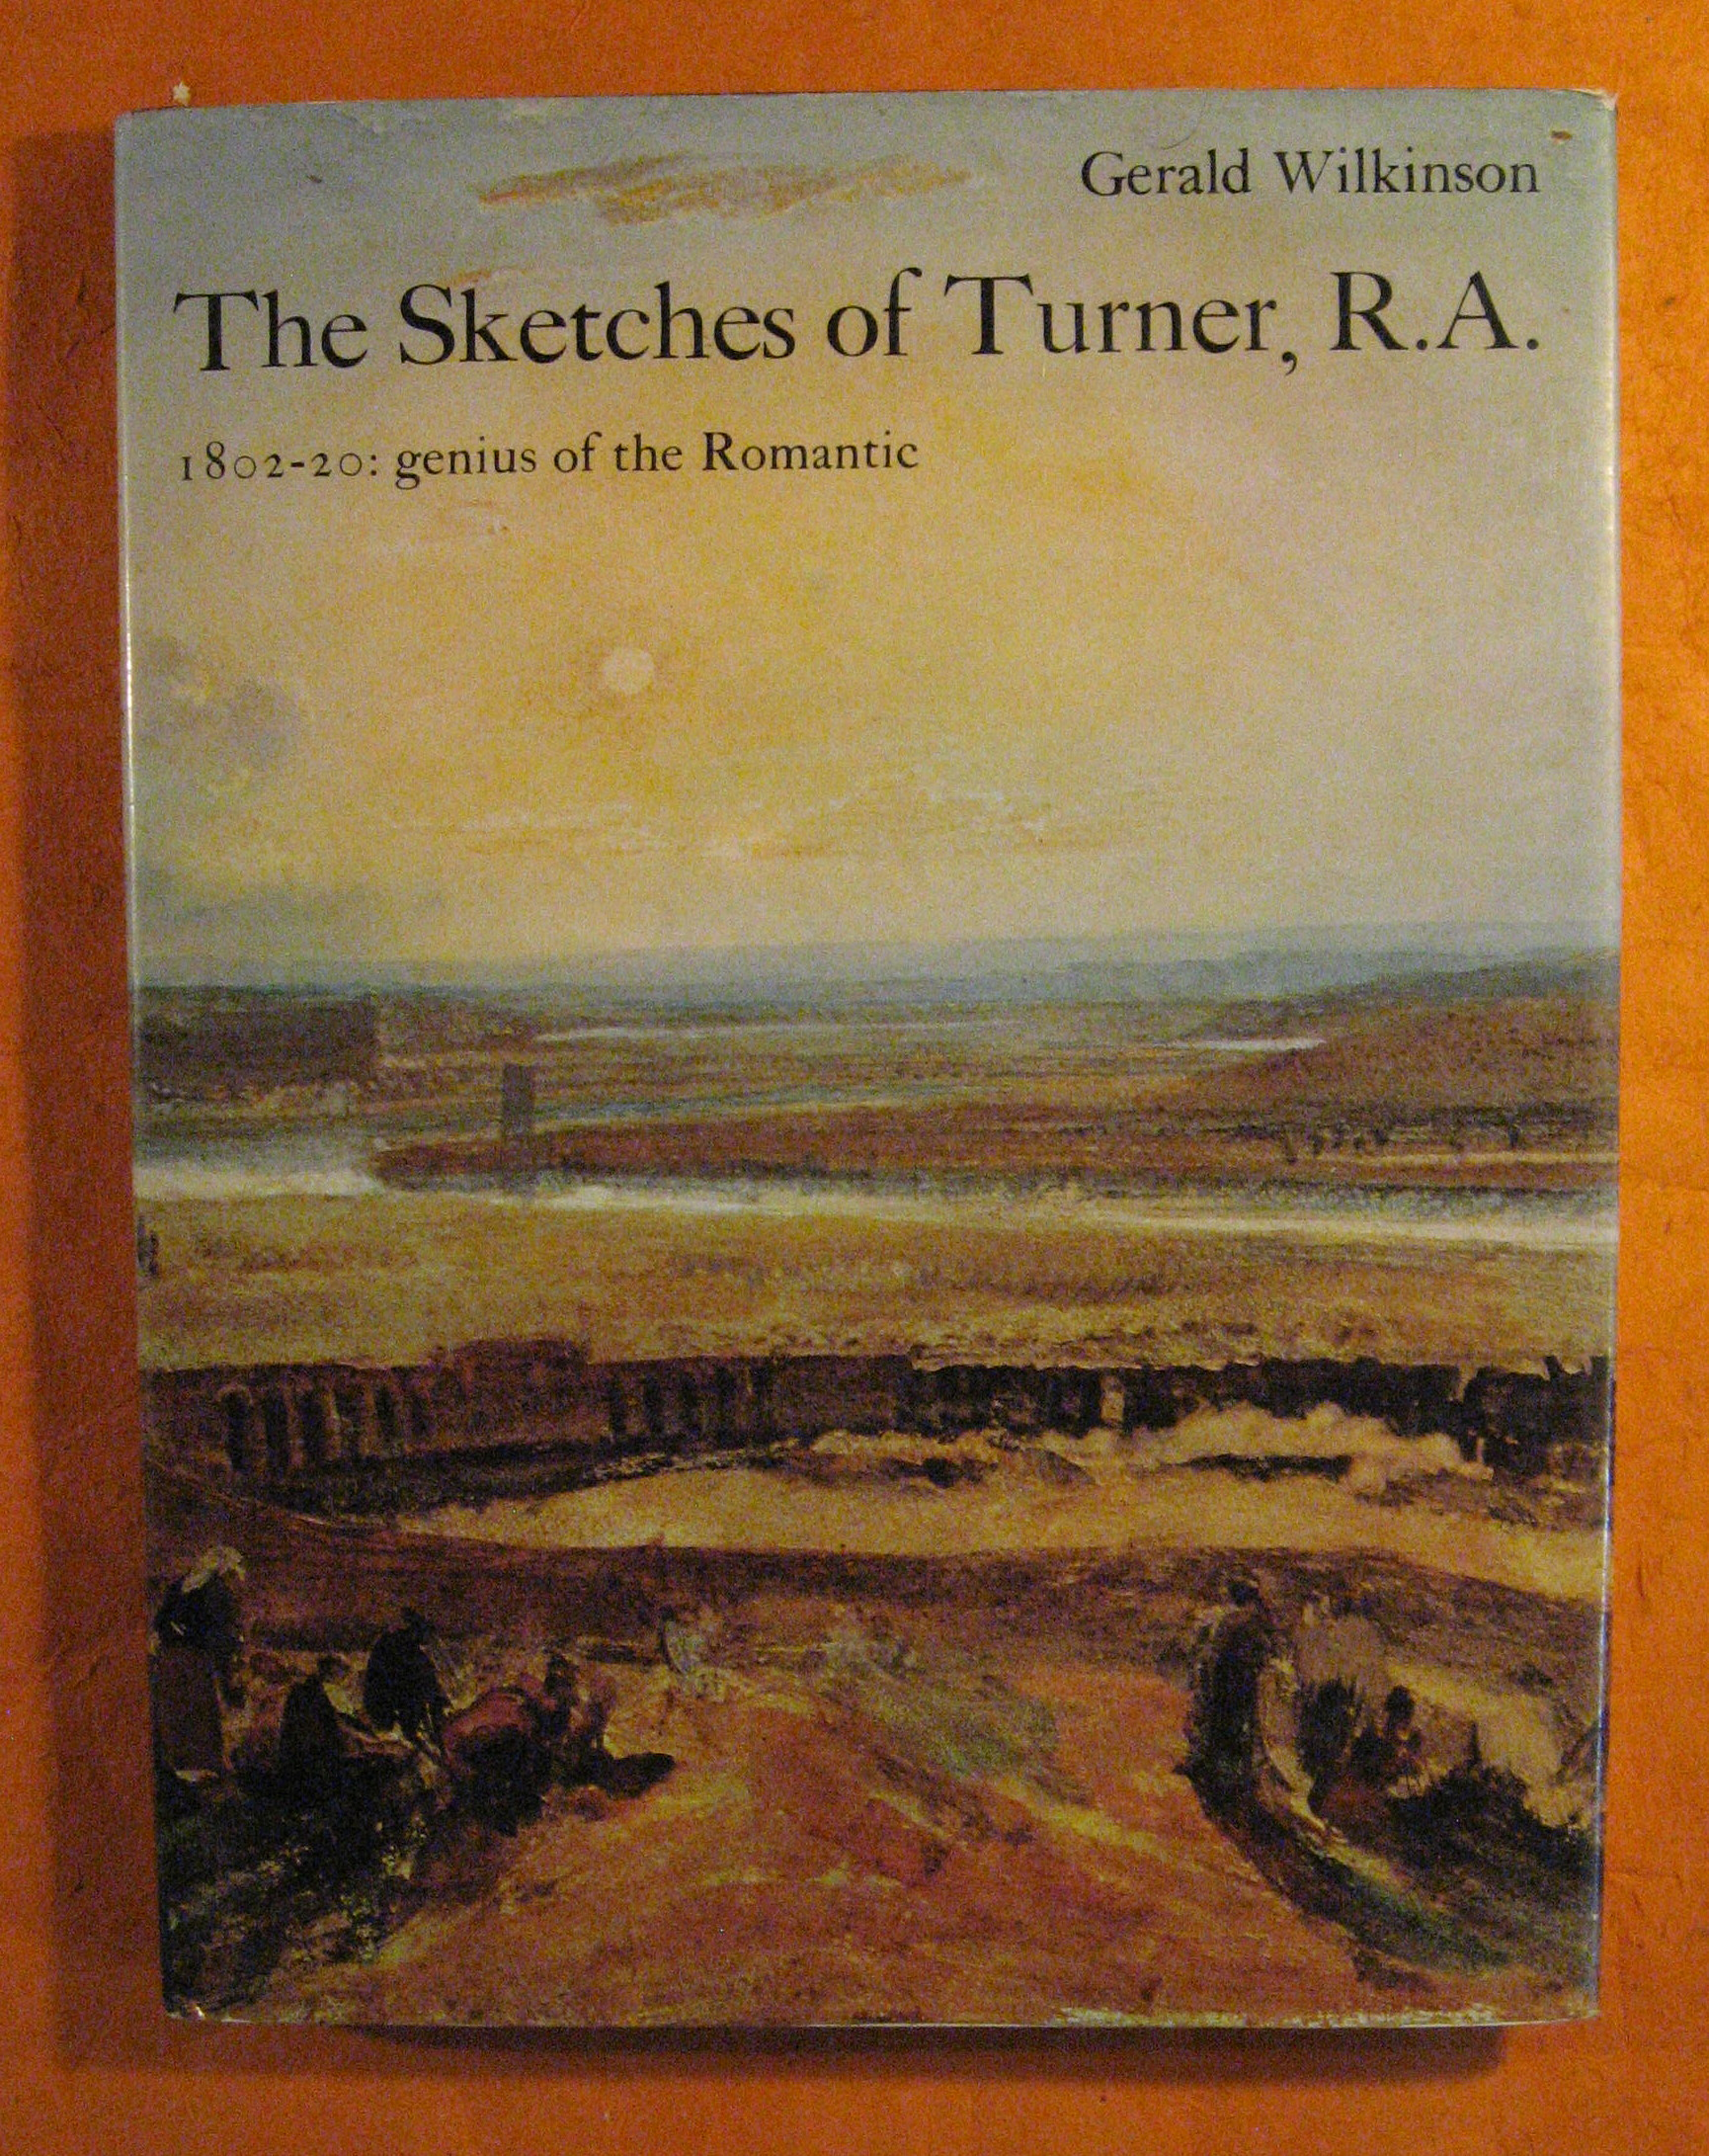 Image for The Sketches of Turner, R.A., 1802-20: Genius of the Romantic